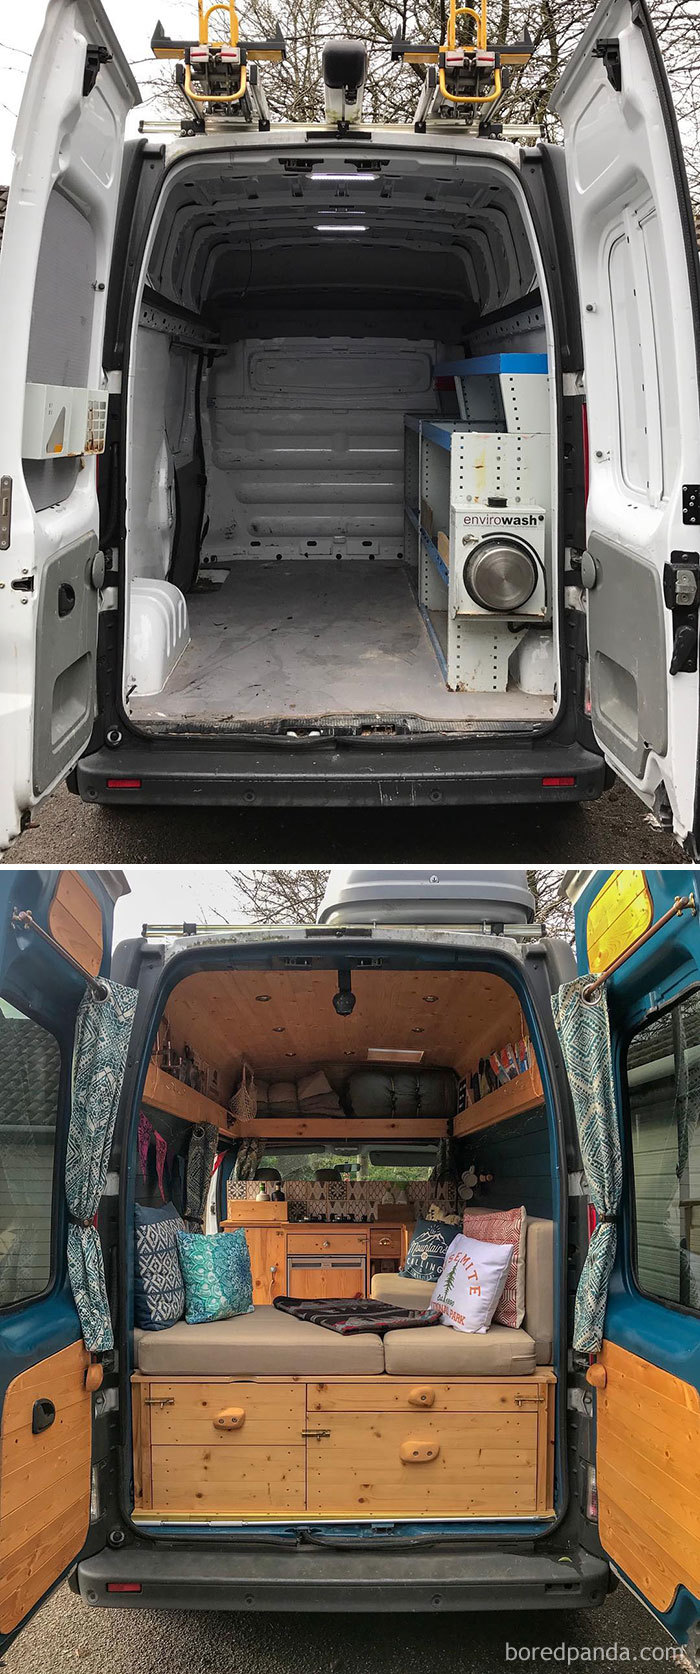 Then And Now. It's 2 Years To The Day Since We Picked Up Our Little Van. Looks A Wee Bit Different Now